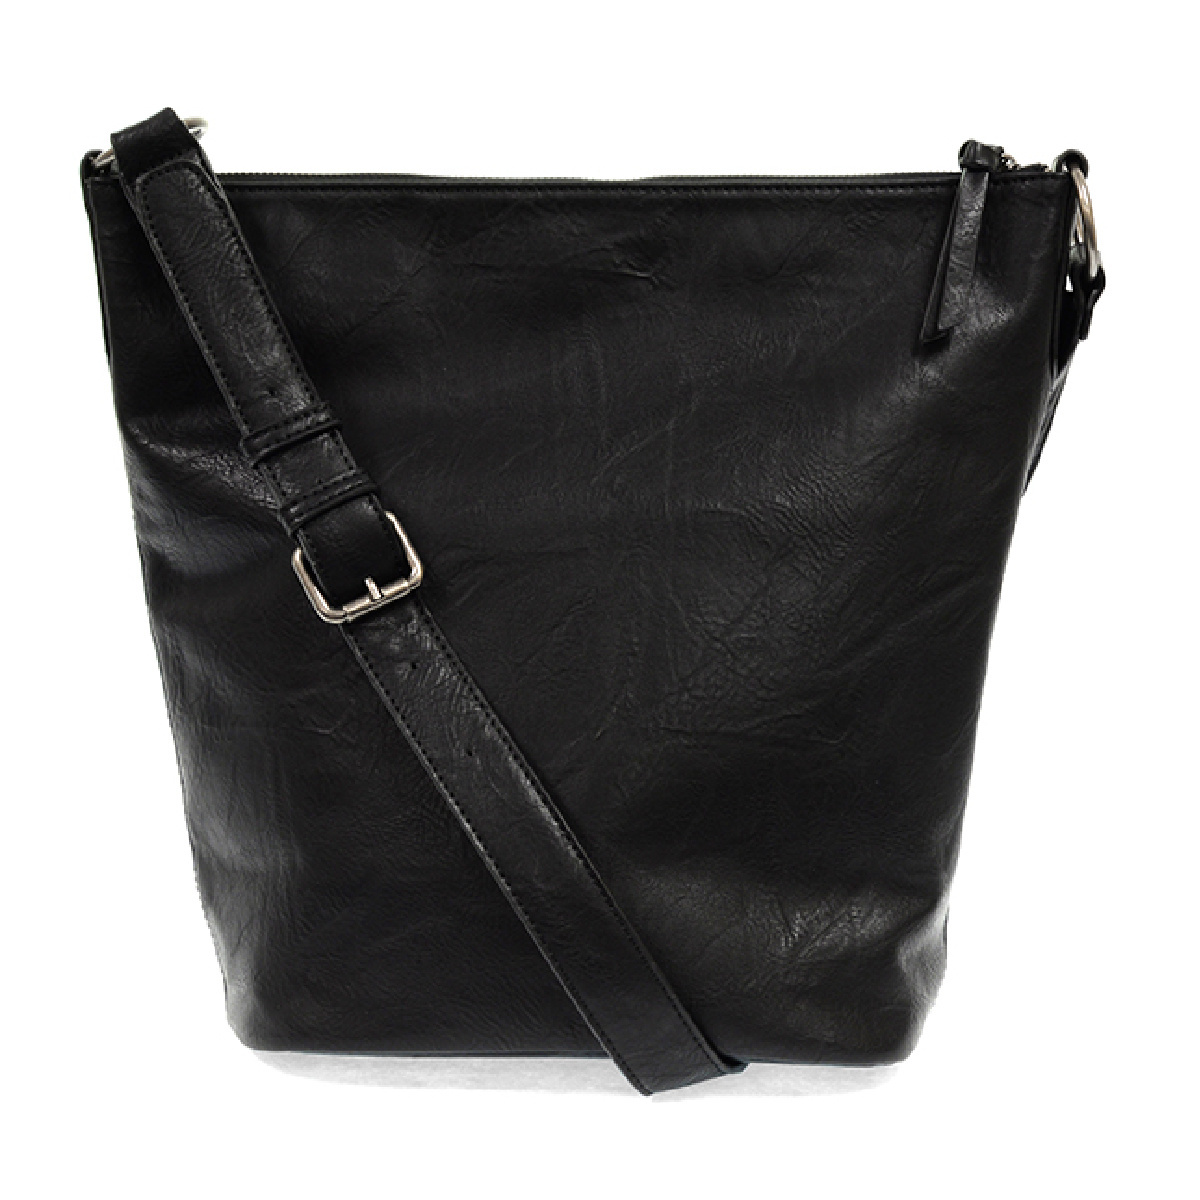 Joy Susan Joy Susan Nori Bucket Bag Black